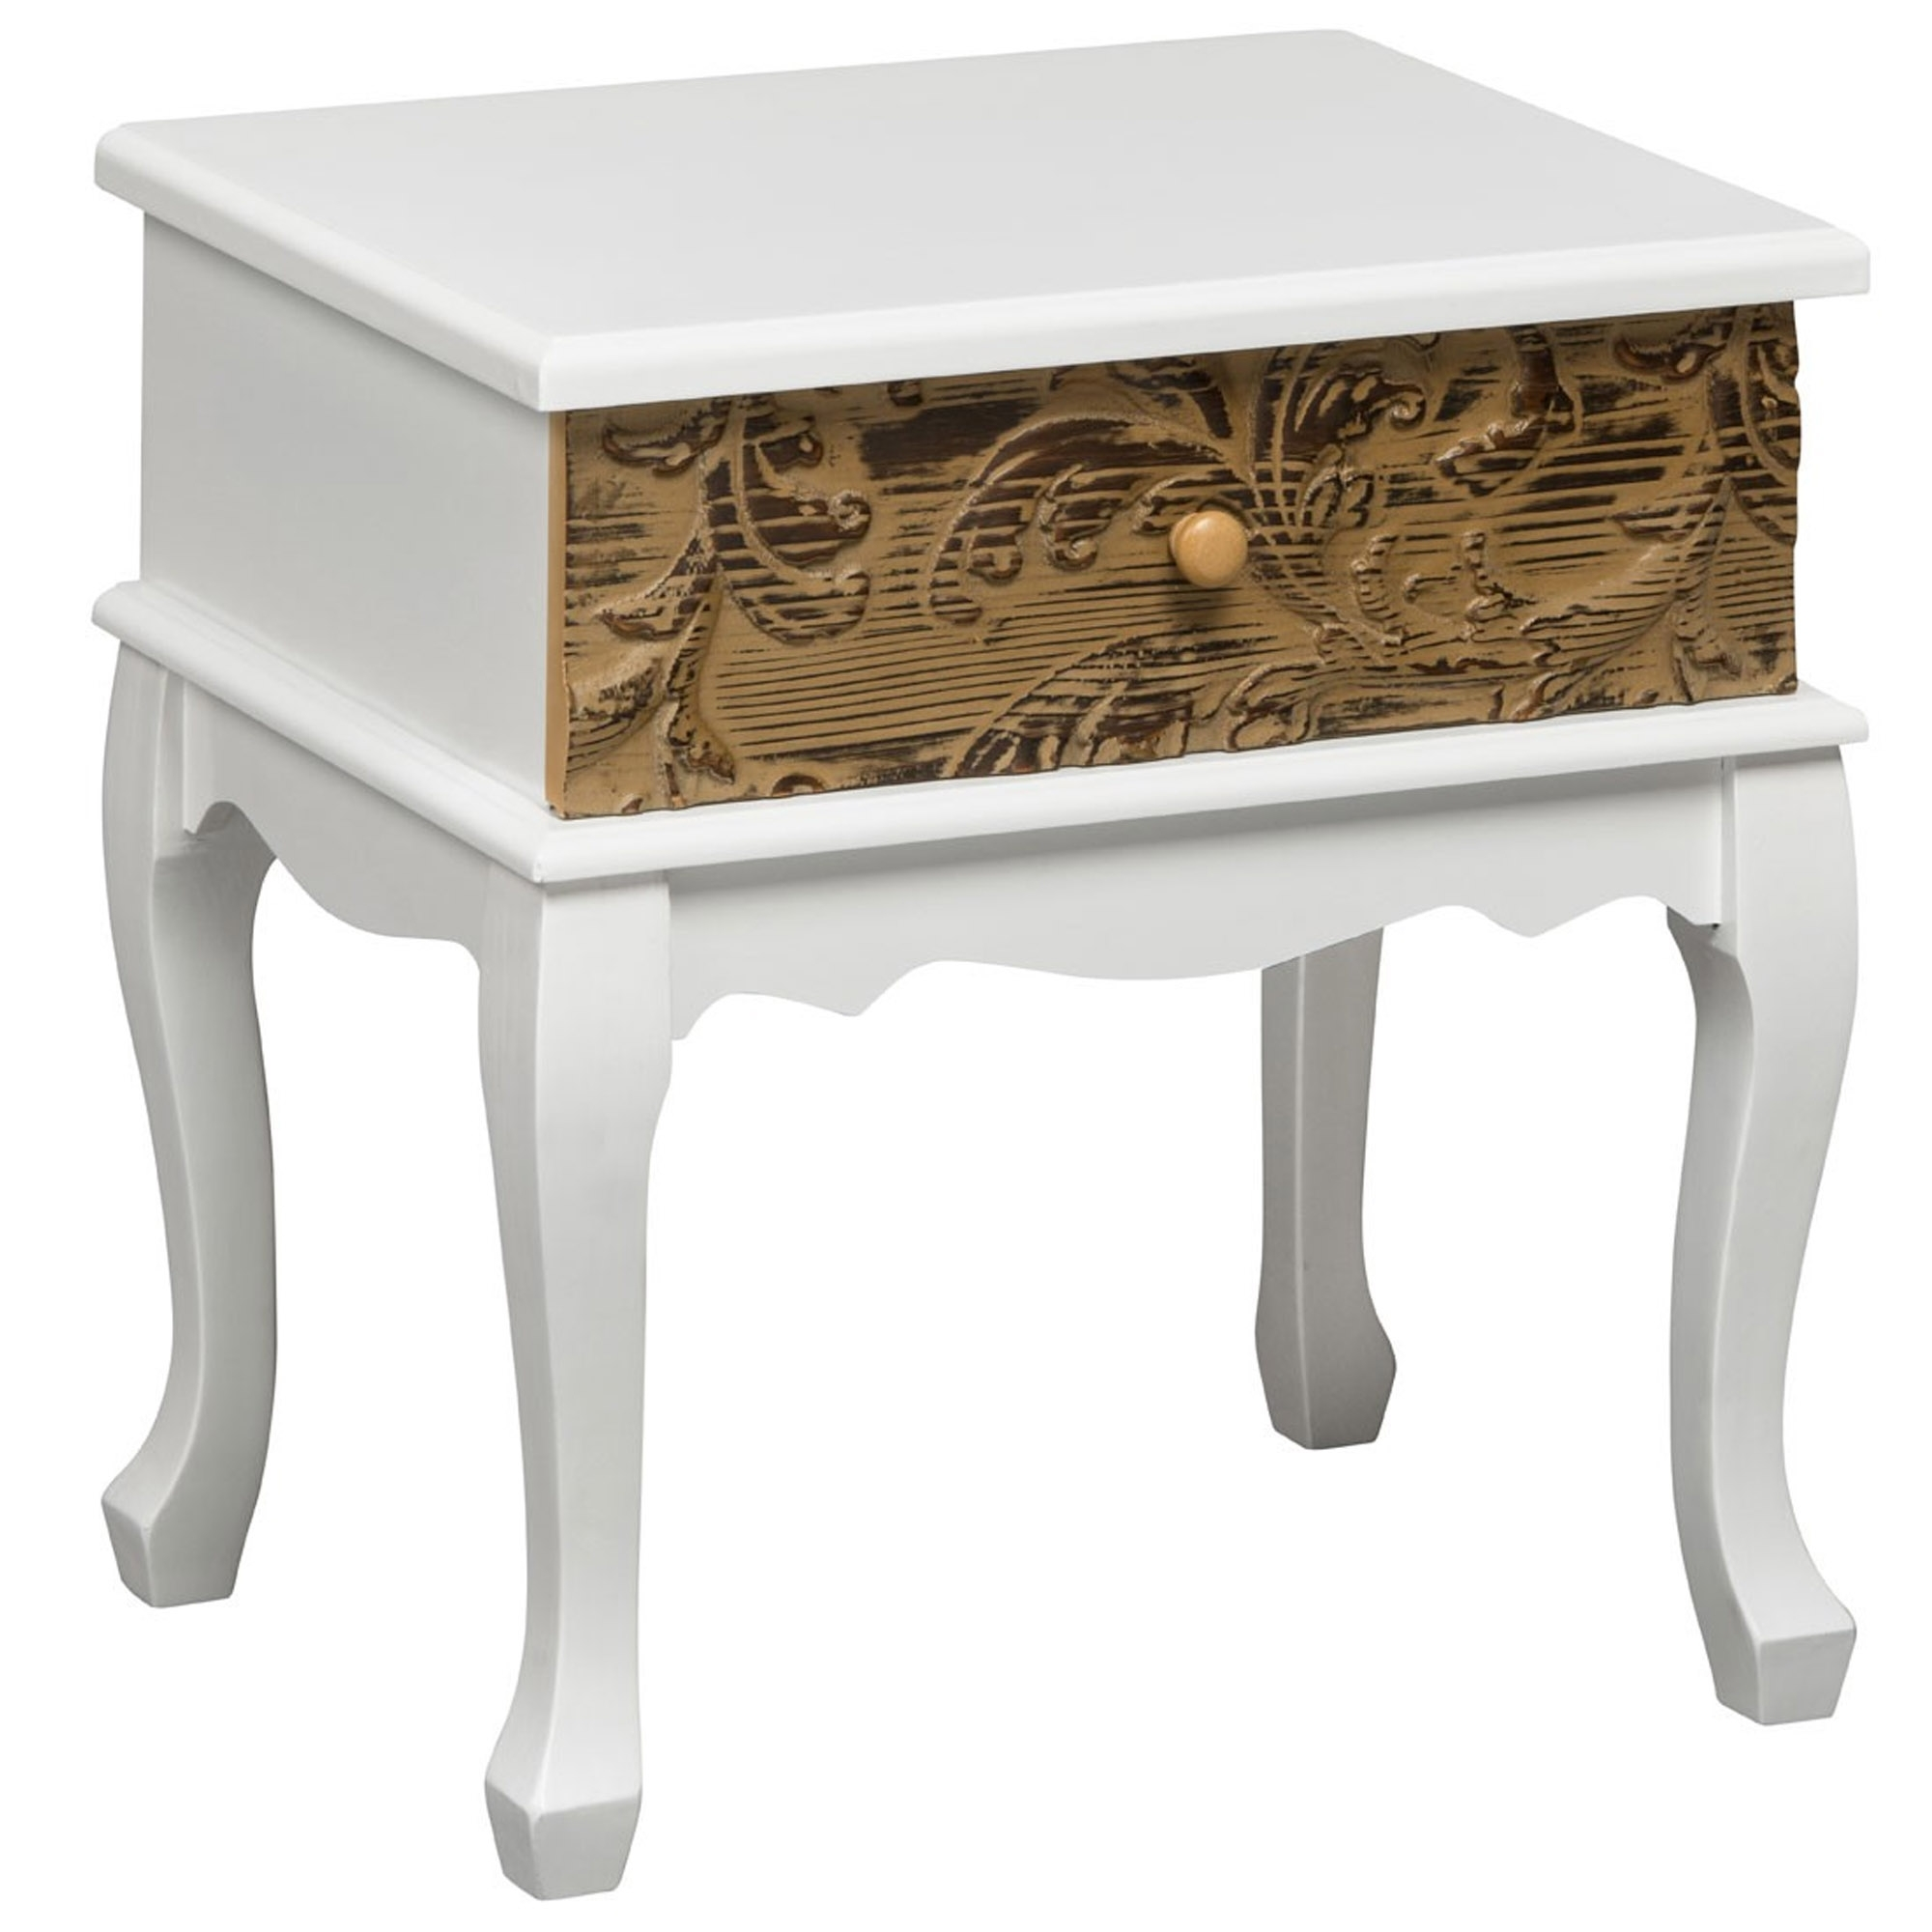 Bali side table modern contemporary furniture